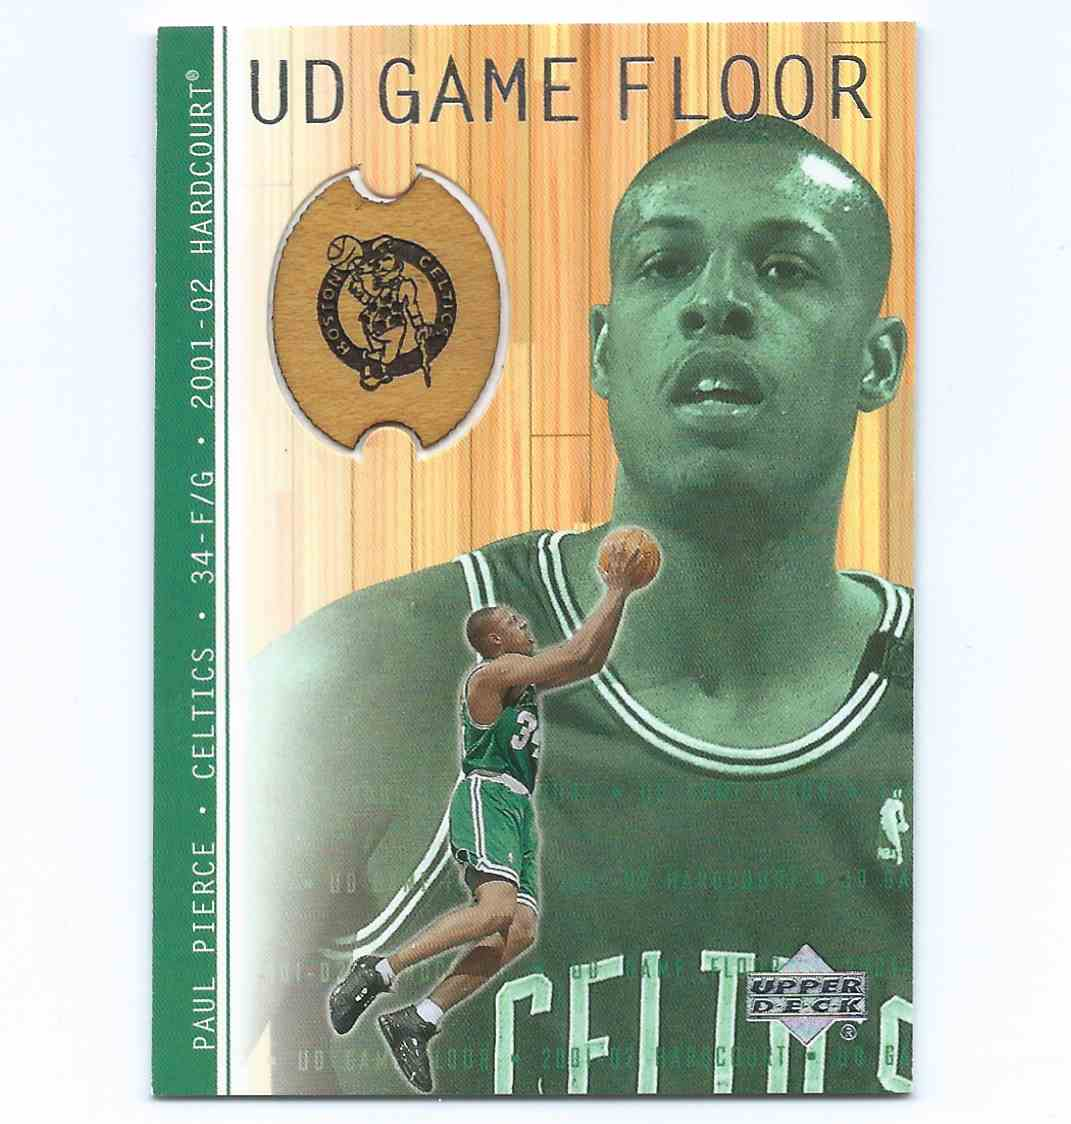 2001-02 Upper Deck Hardcourt UD Game Floor Paul Pierce #PP card front image